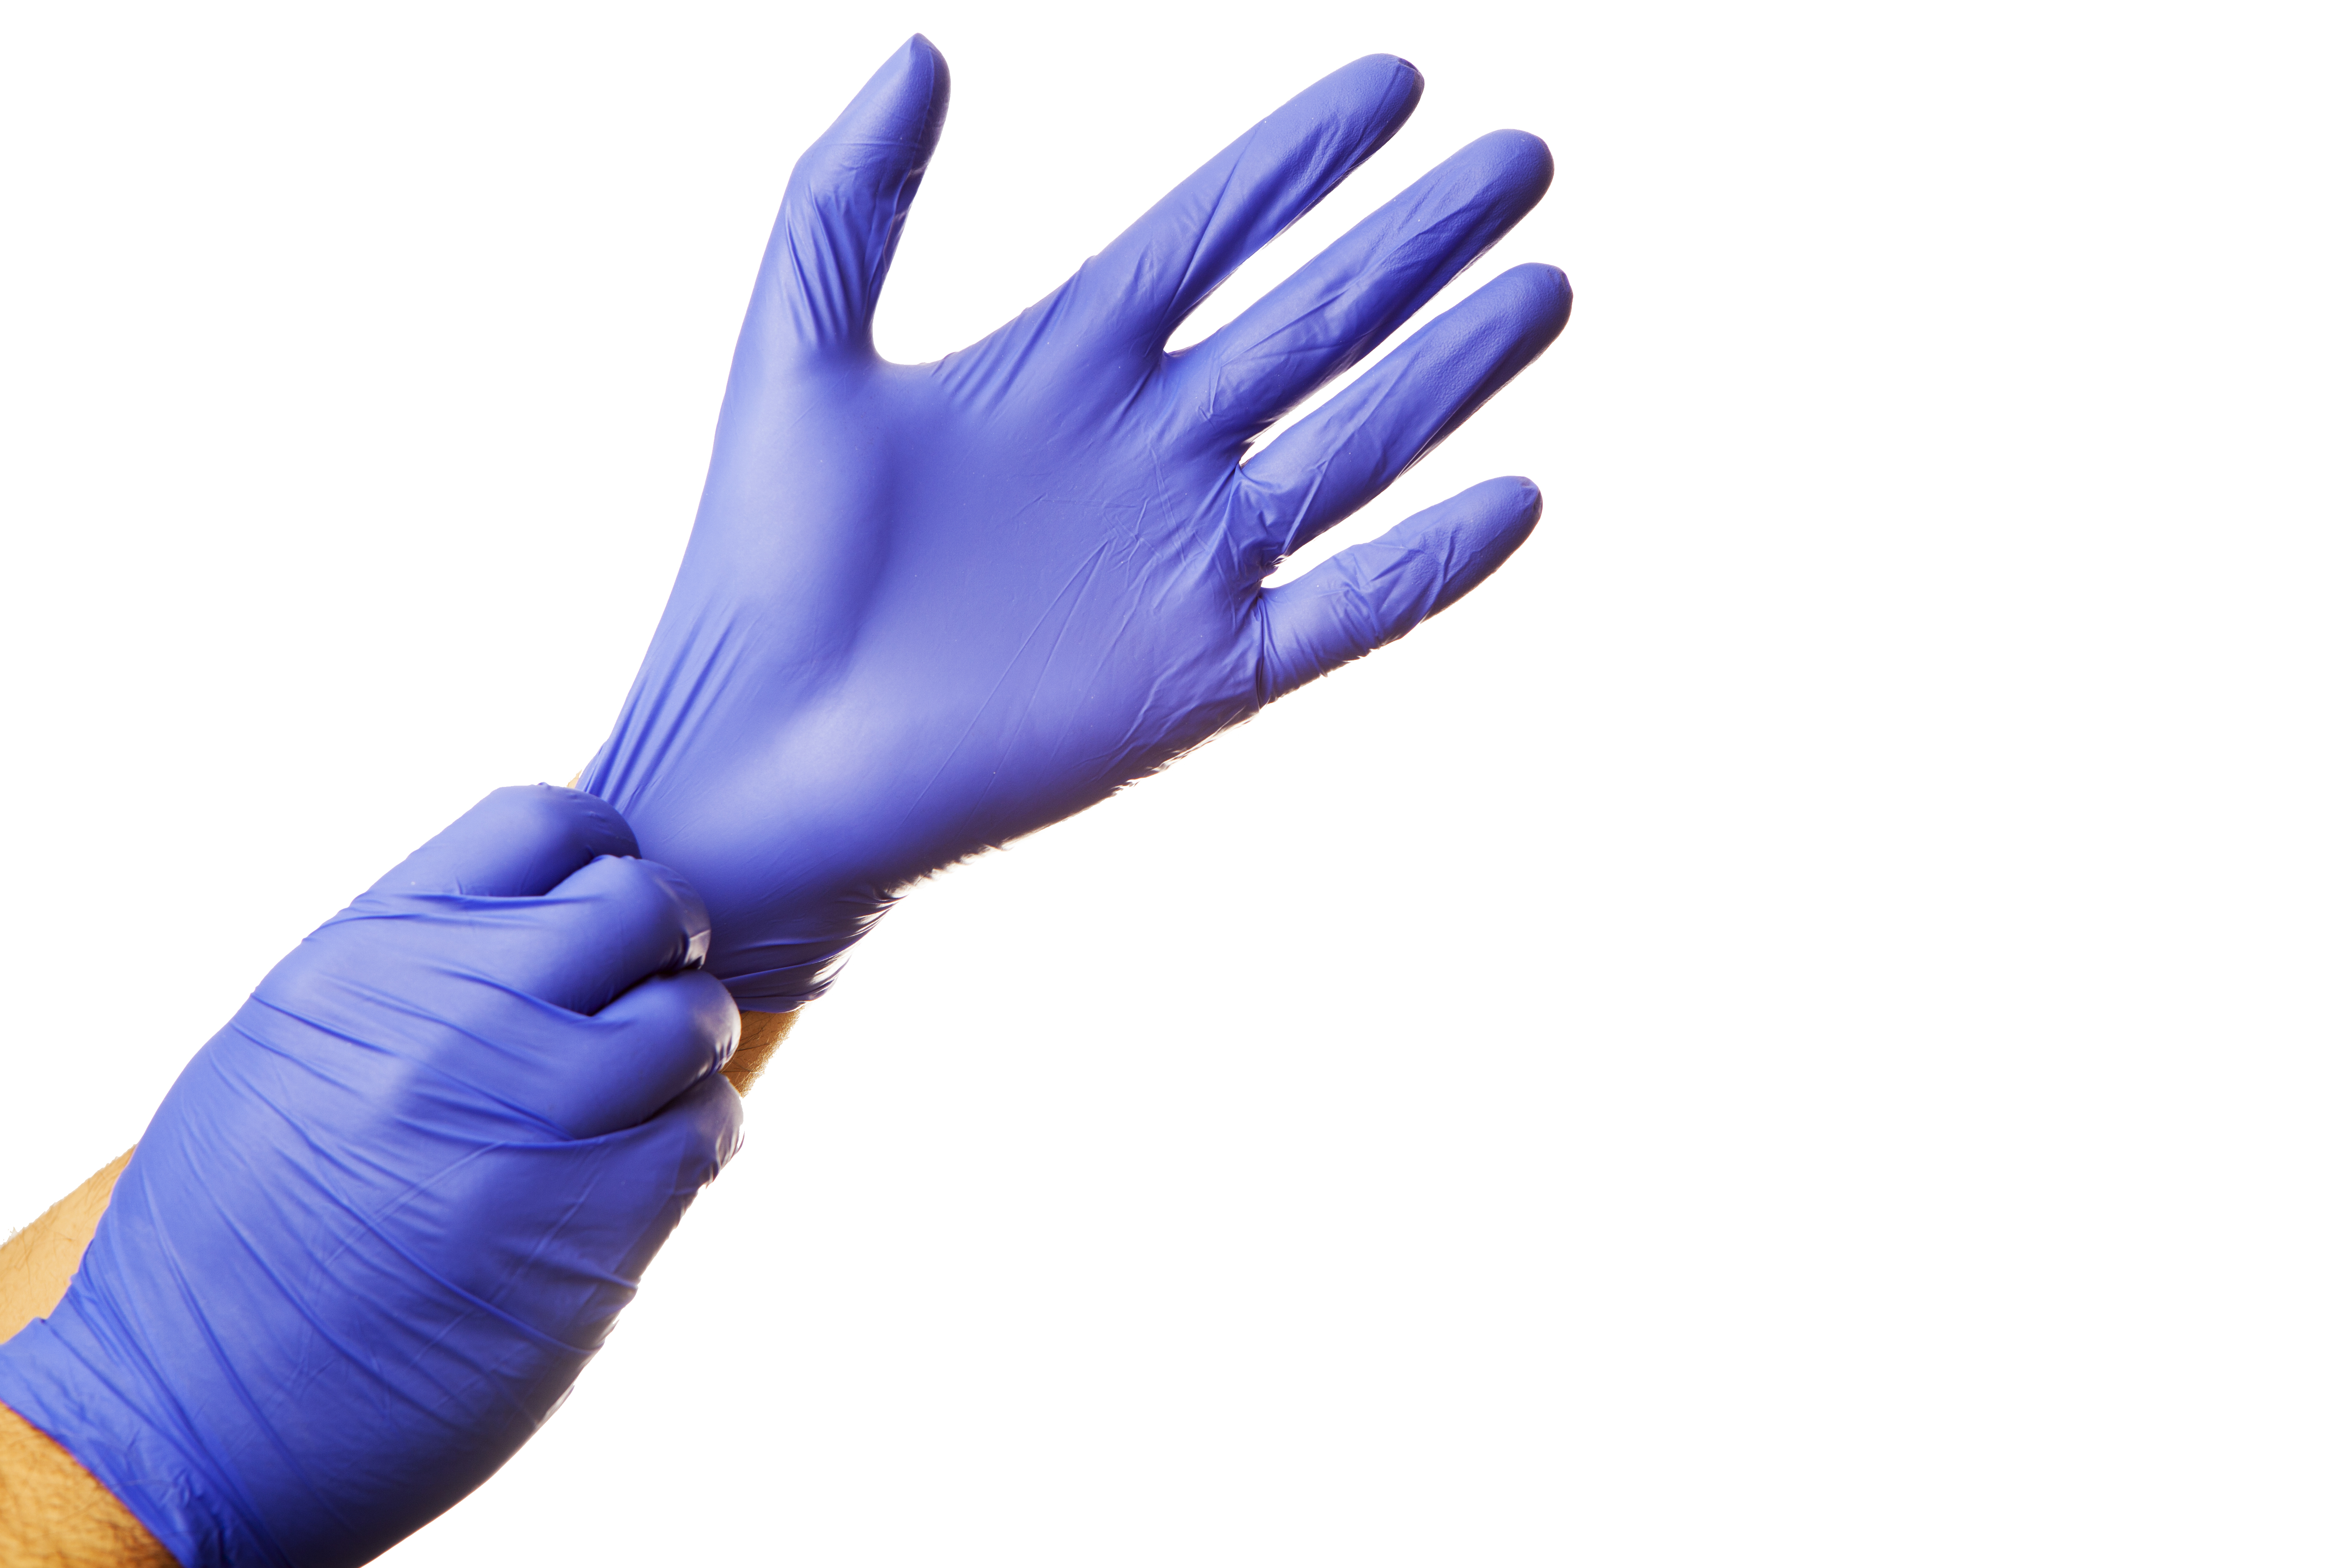 Disposable Rubber Gloves - Box of 100 - Medium